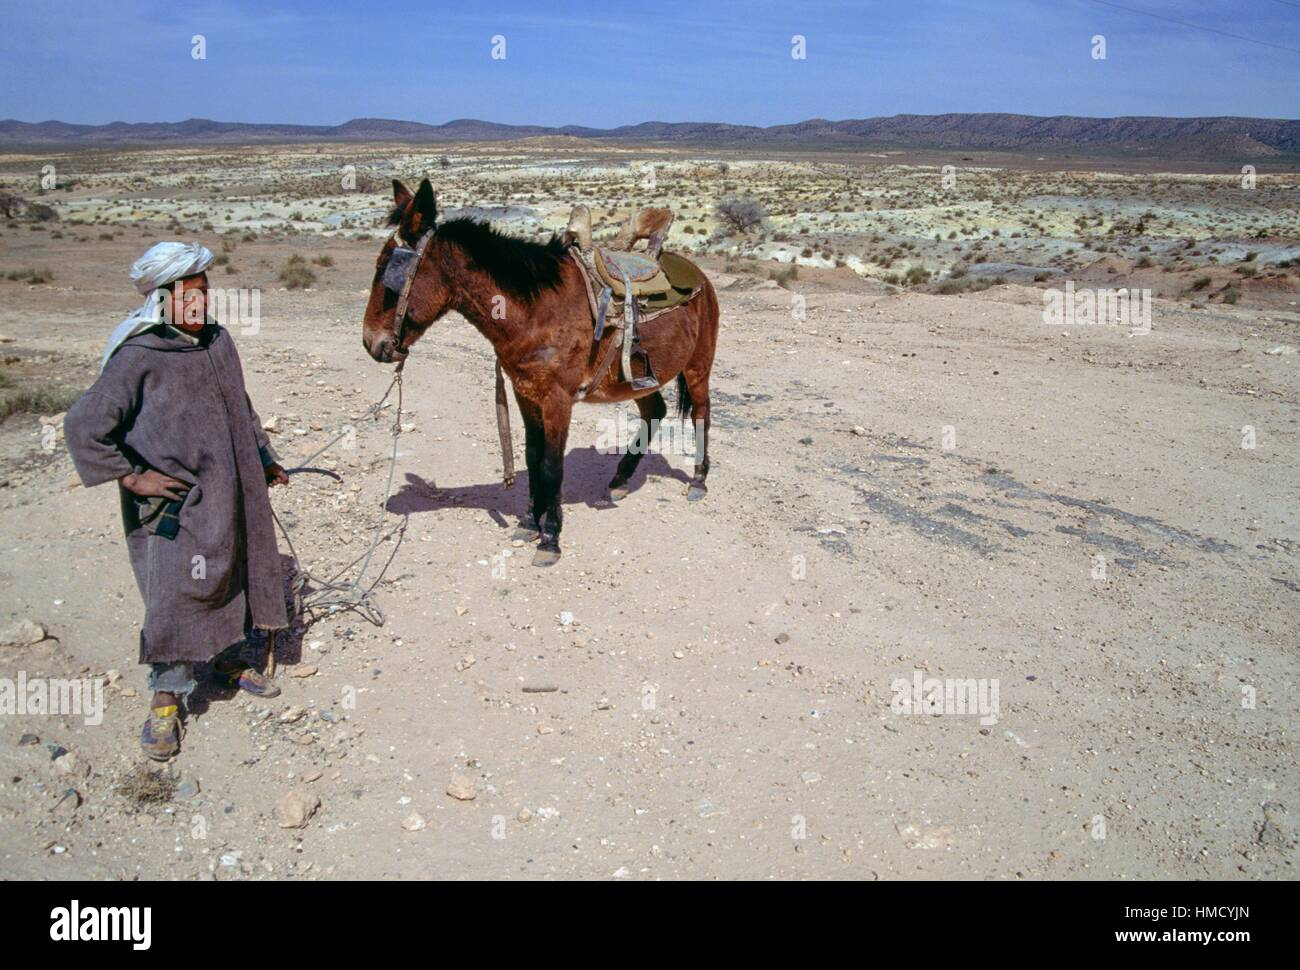 Nomad with a horse, Djebel Amour, Algeria. - Stock Image